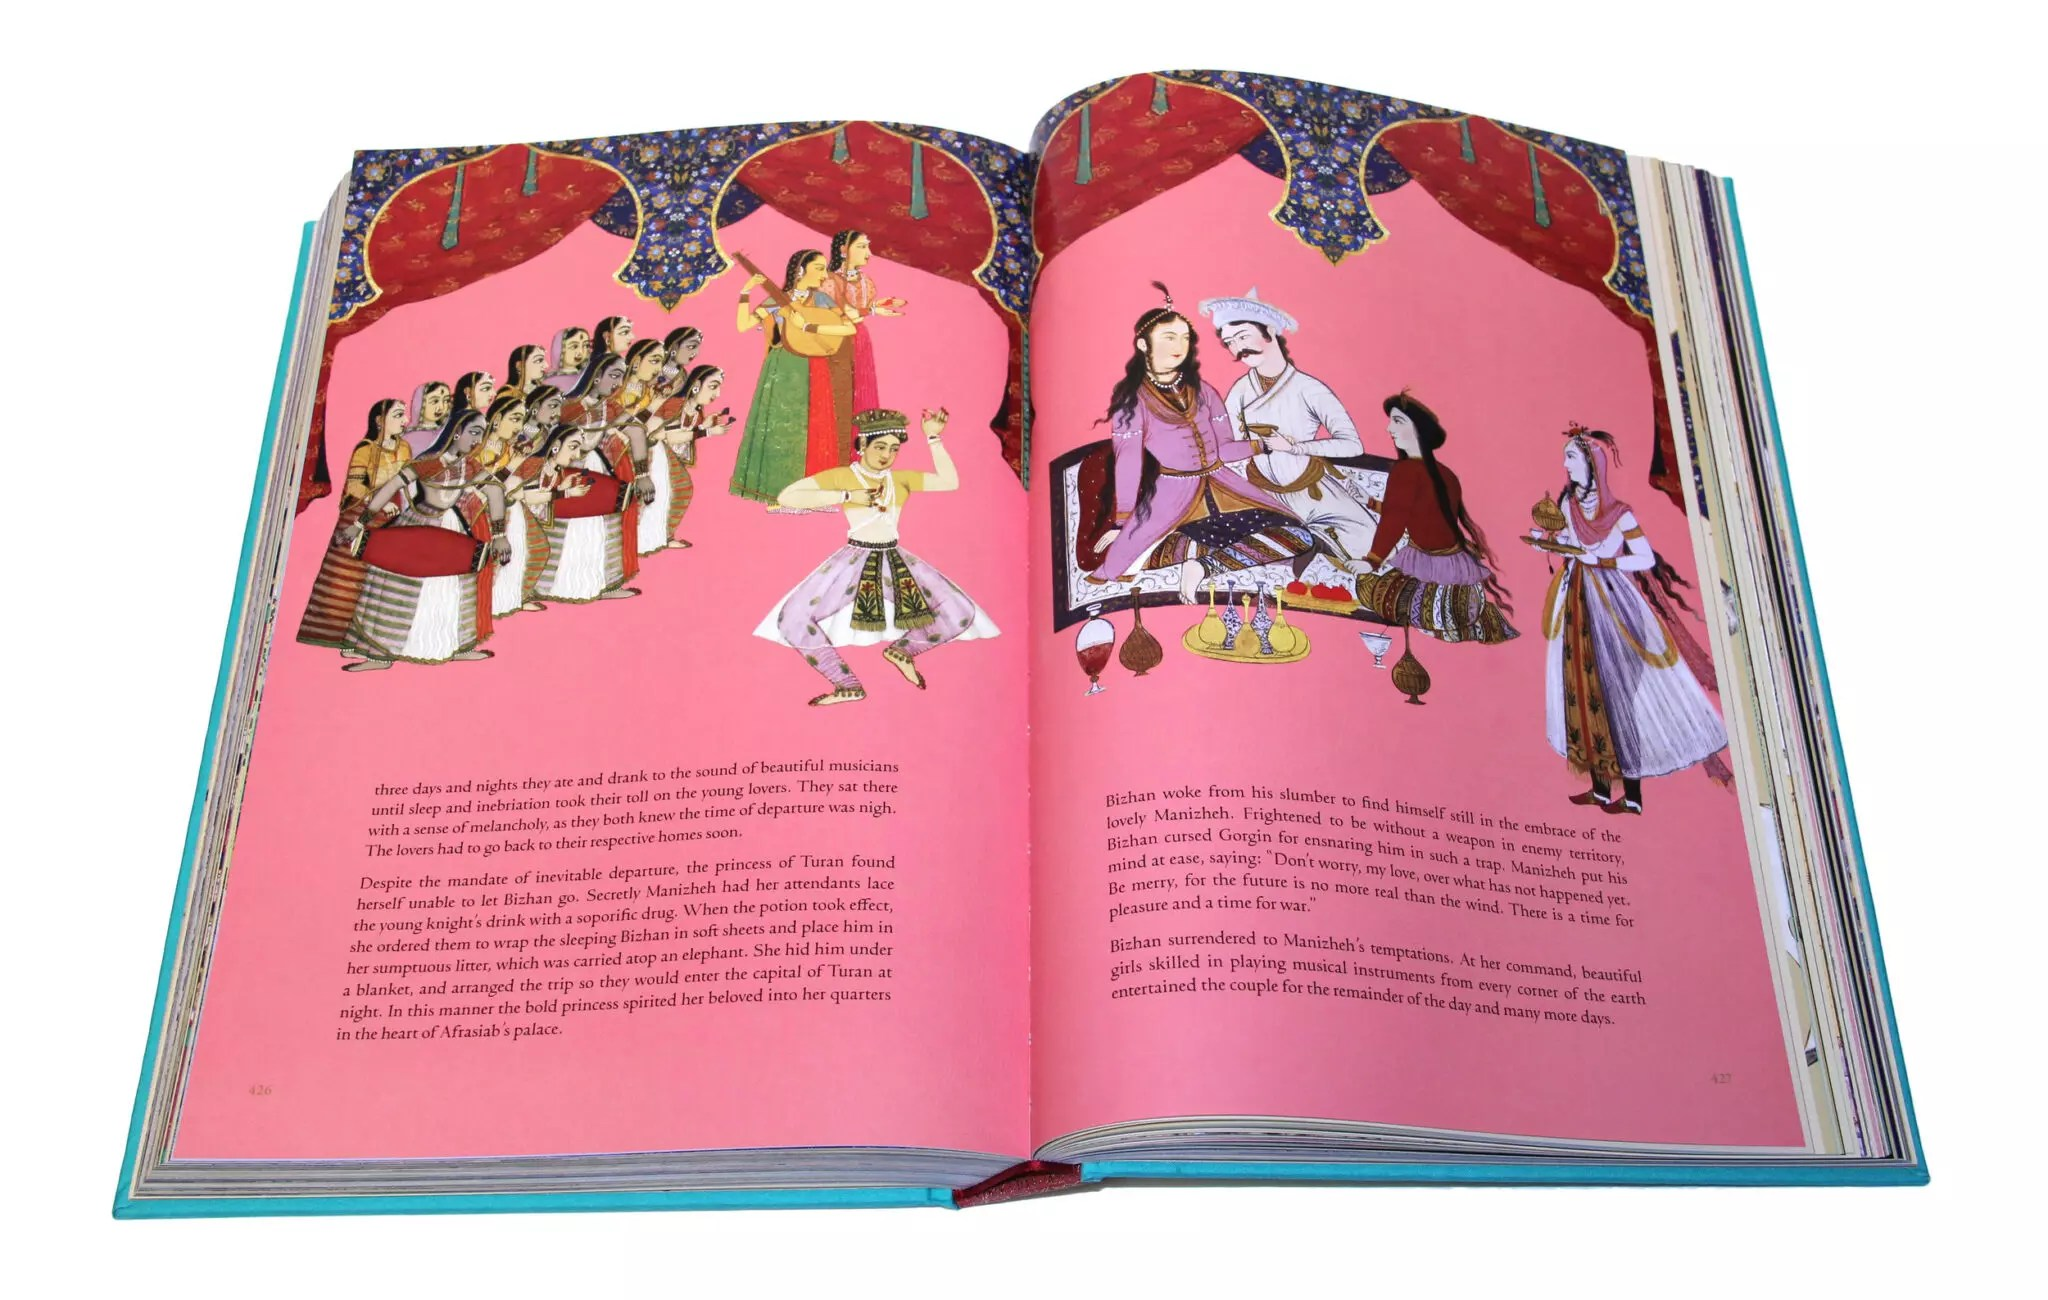 Shahnameh page426